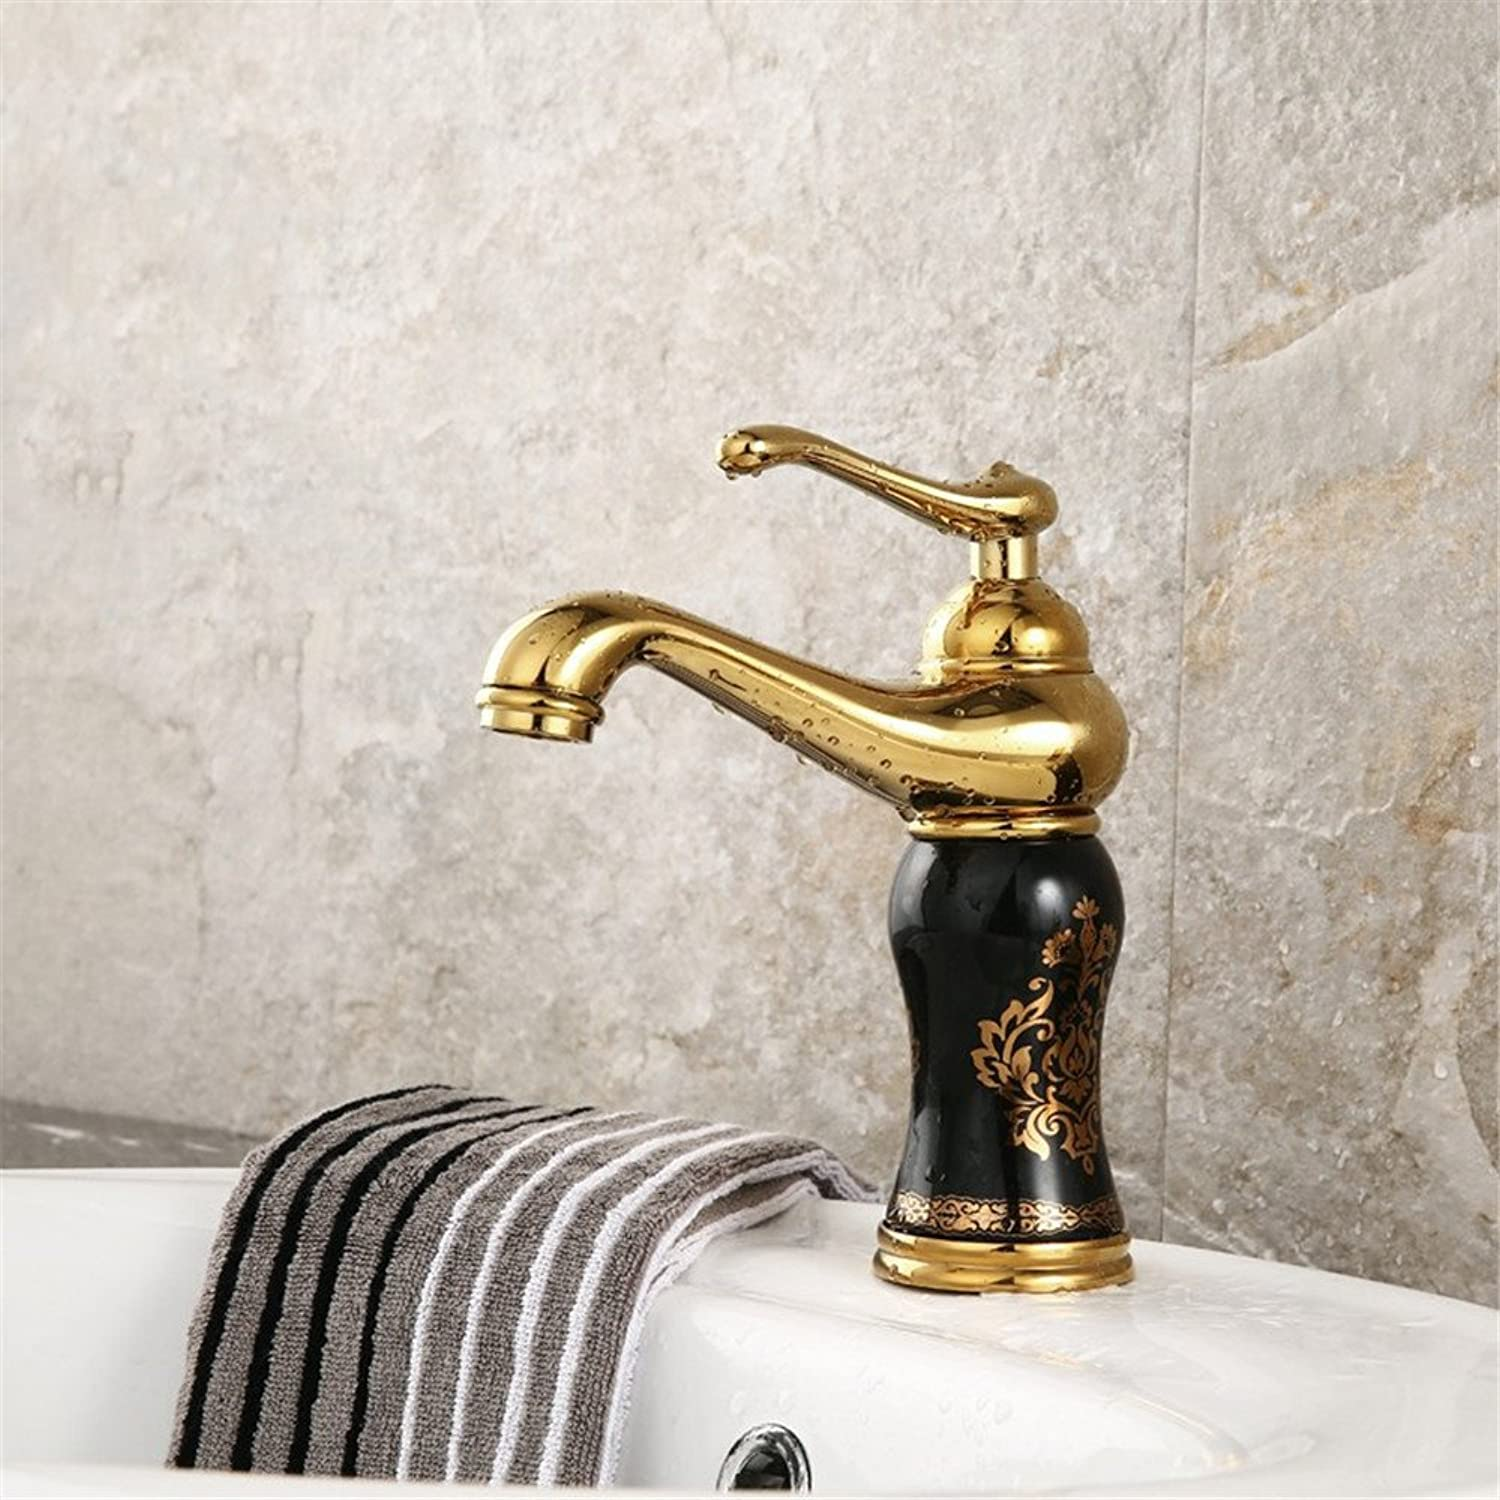 Kokeruup Copper European Faucet Bathroom Faucet hot and Cold wash Basin Antique Faucet Single Hole Black Pattern